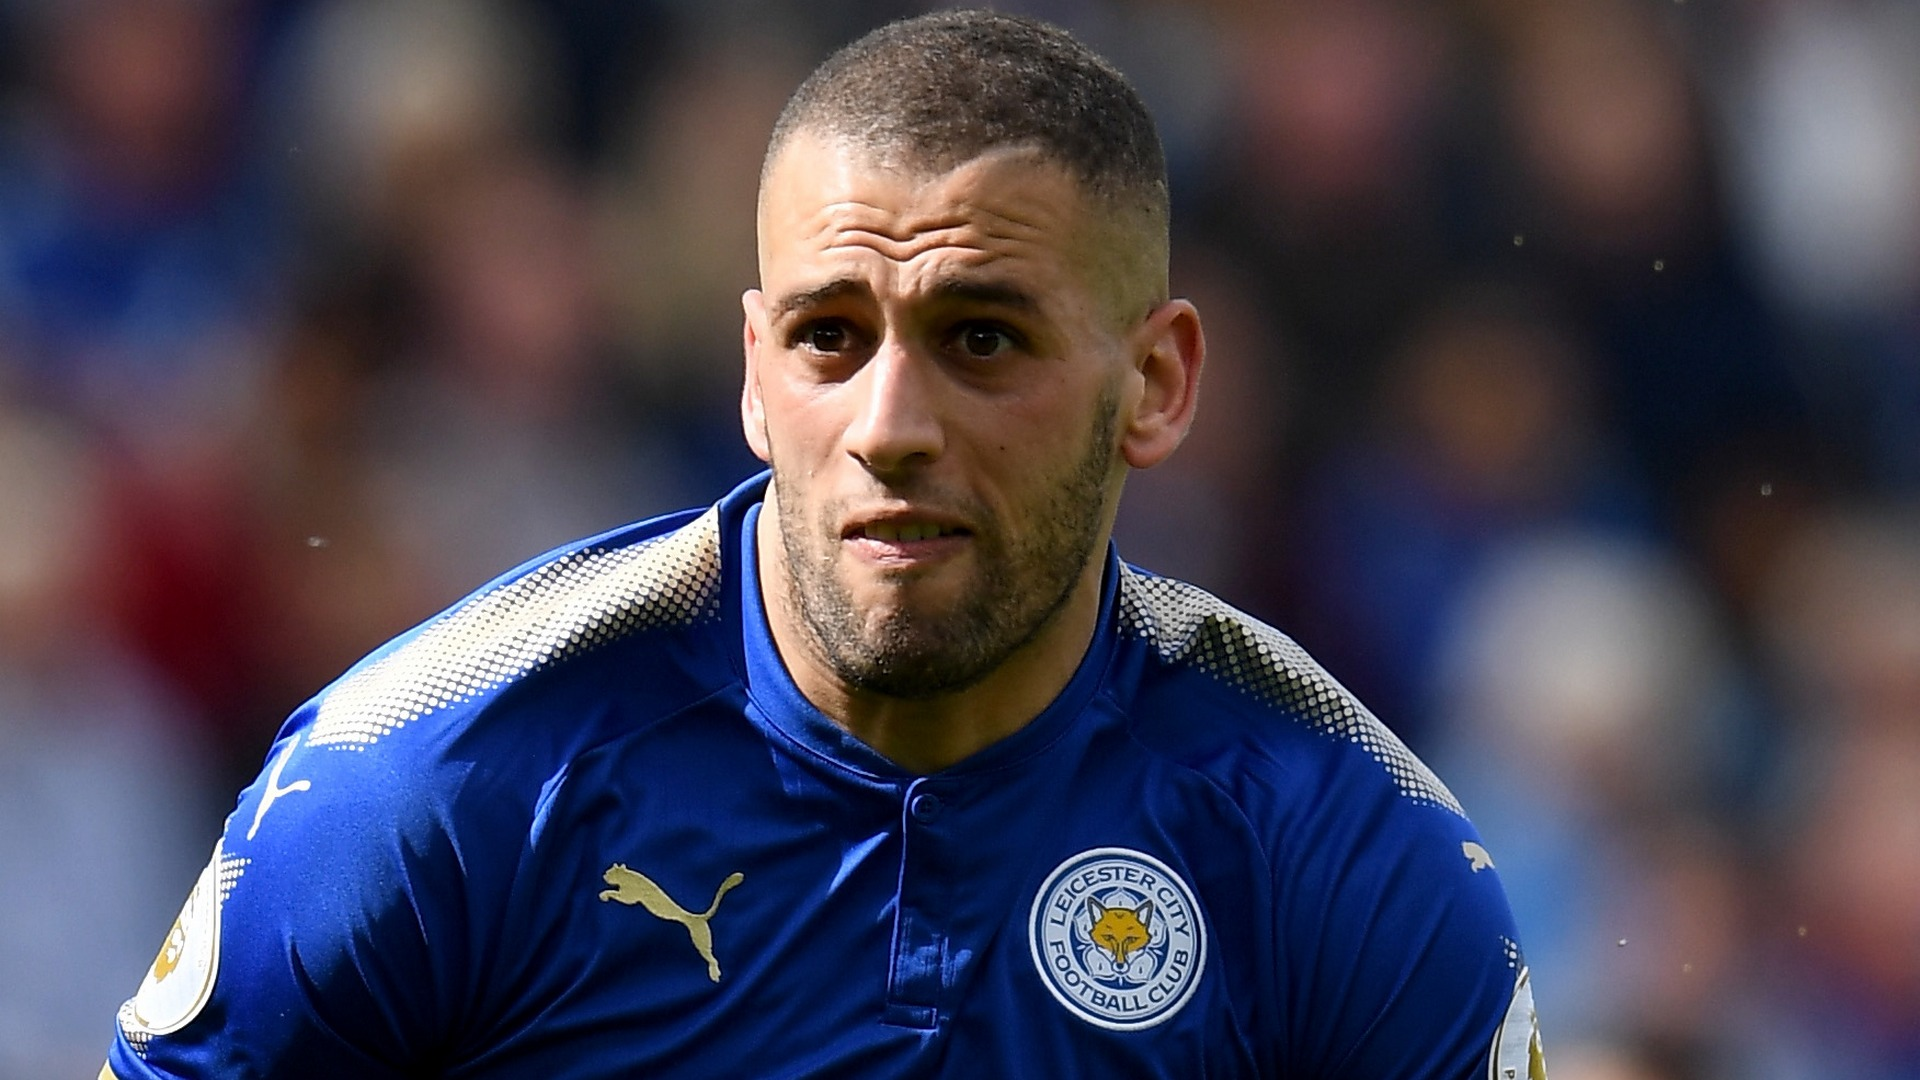 Islam Slimani: Monaco confirm signing Algeria forward from Leicester City